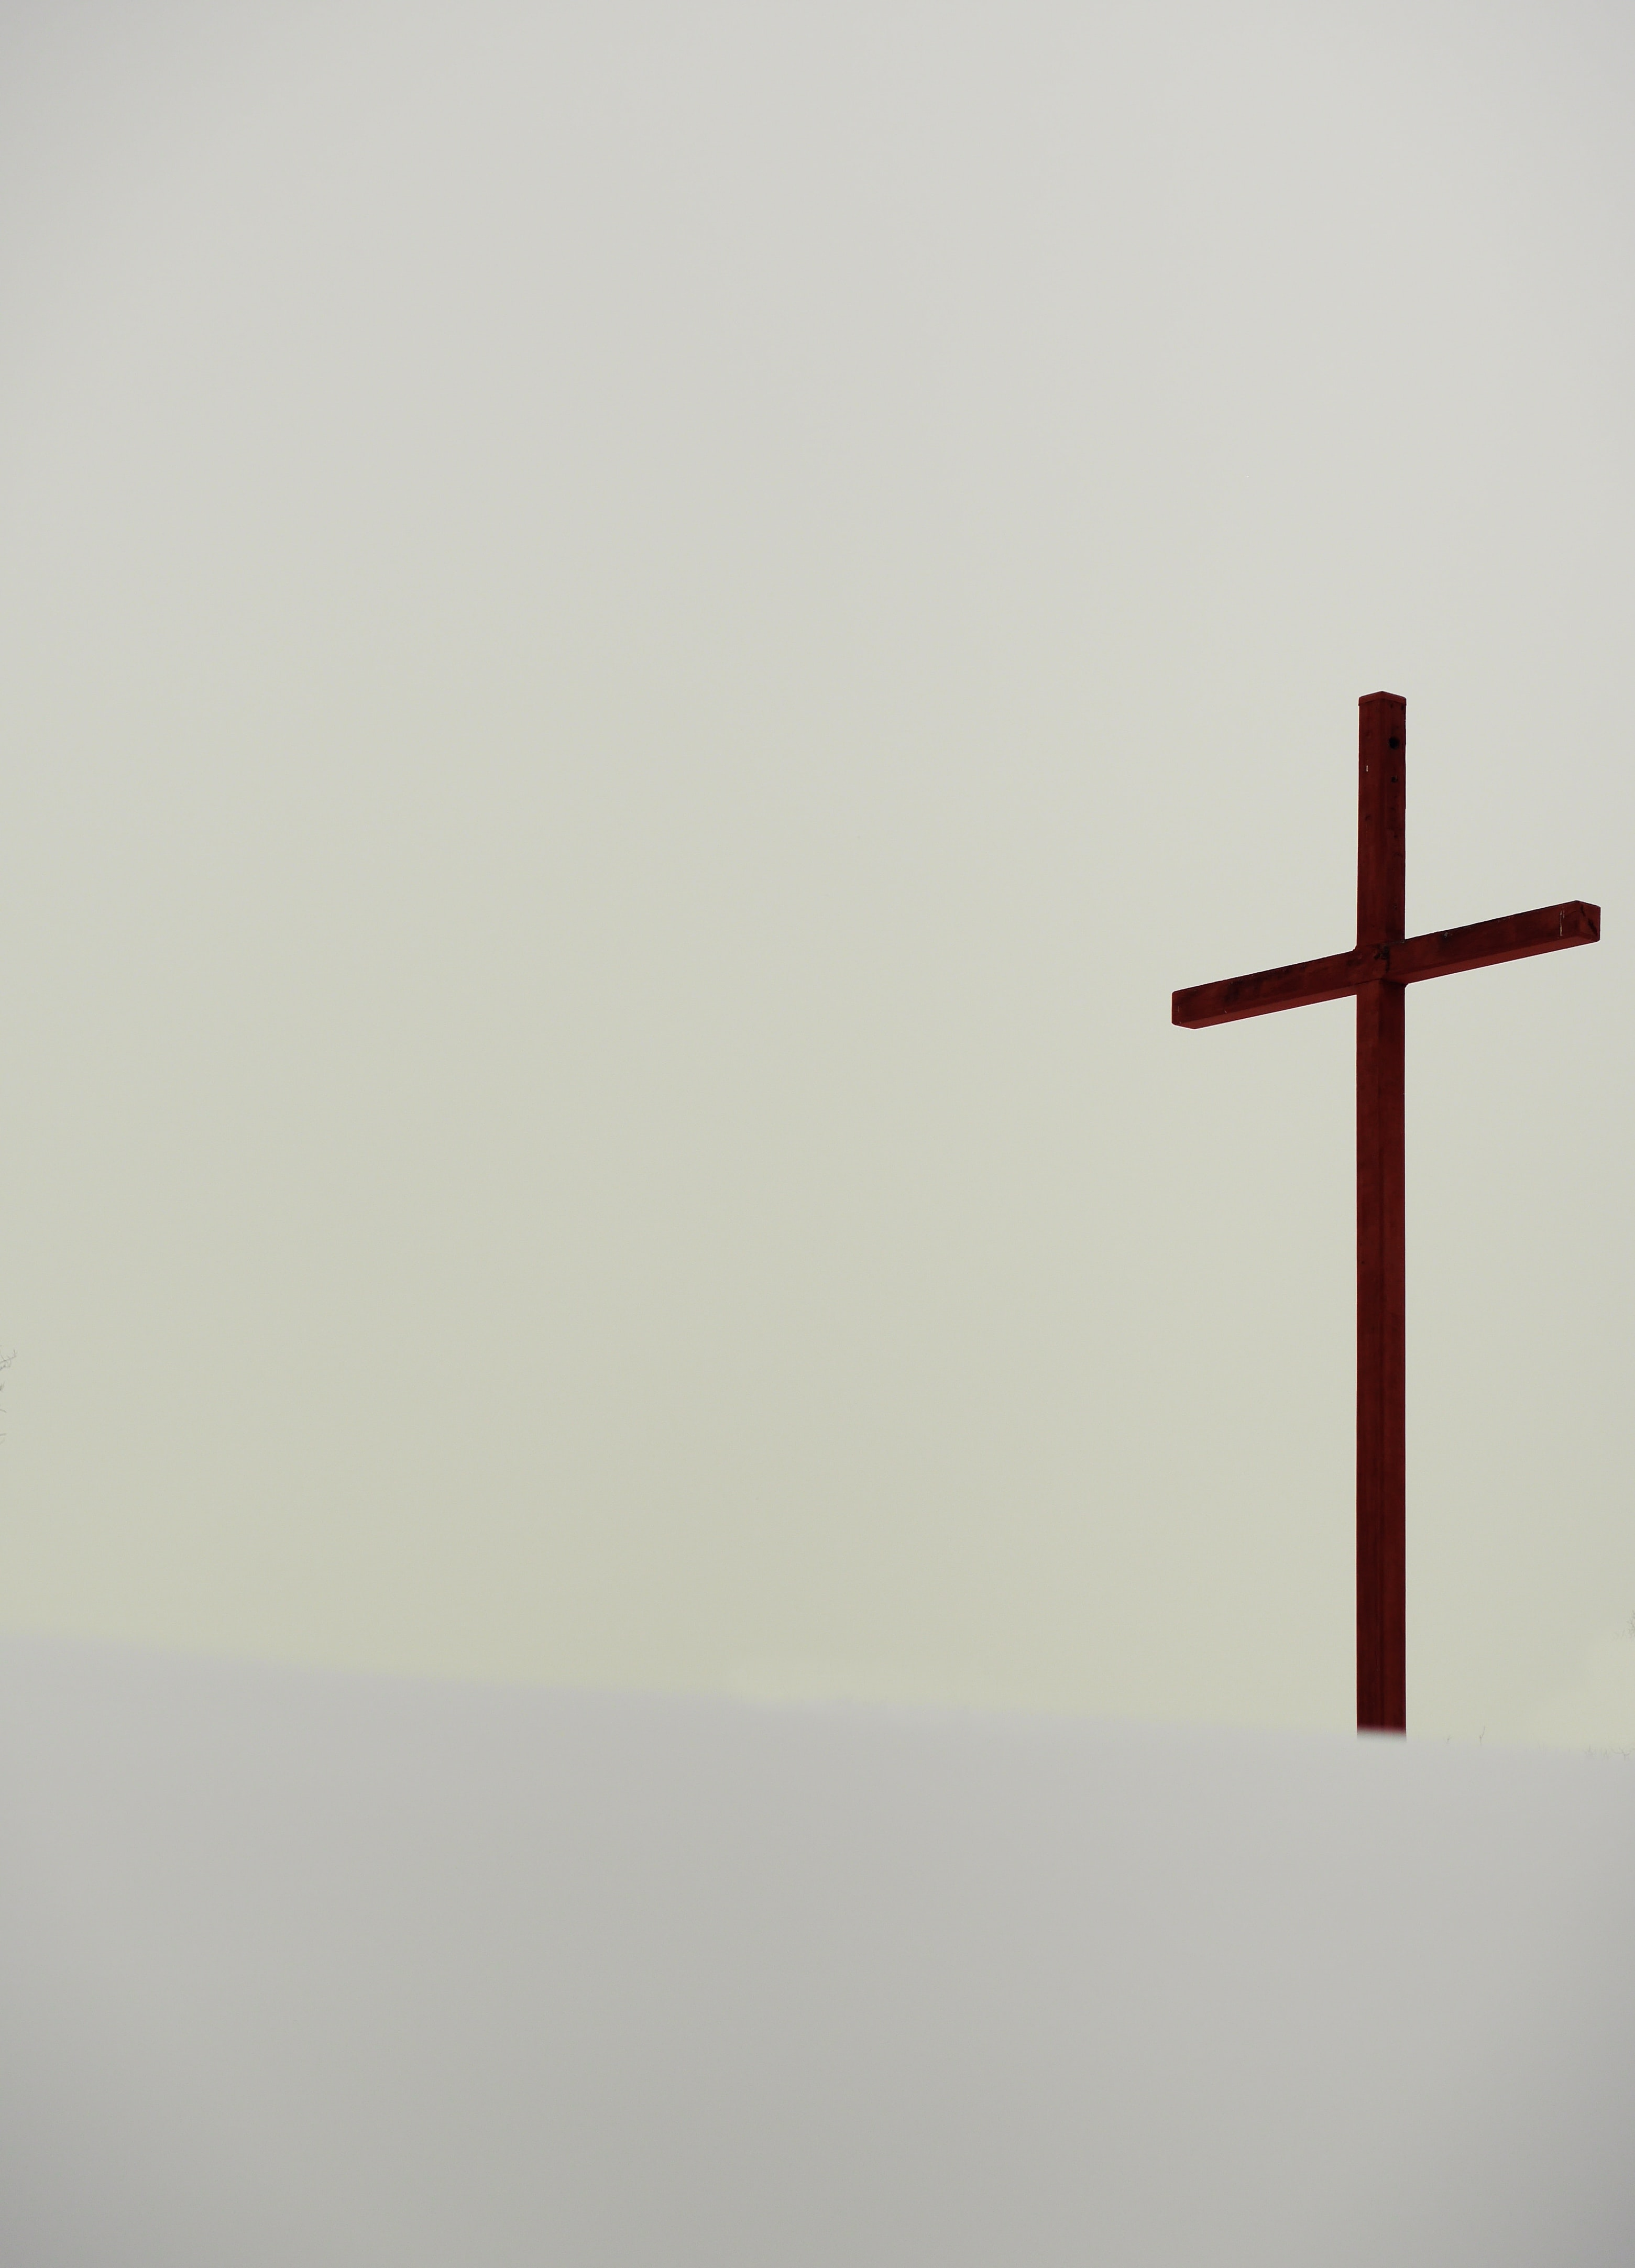 A tall cross statue in the backdrop.